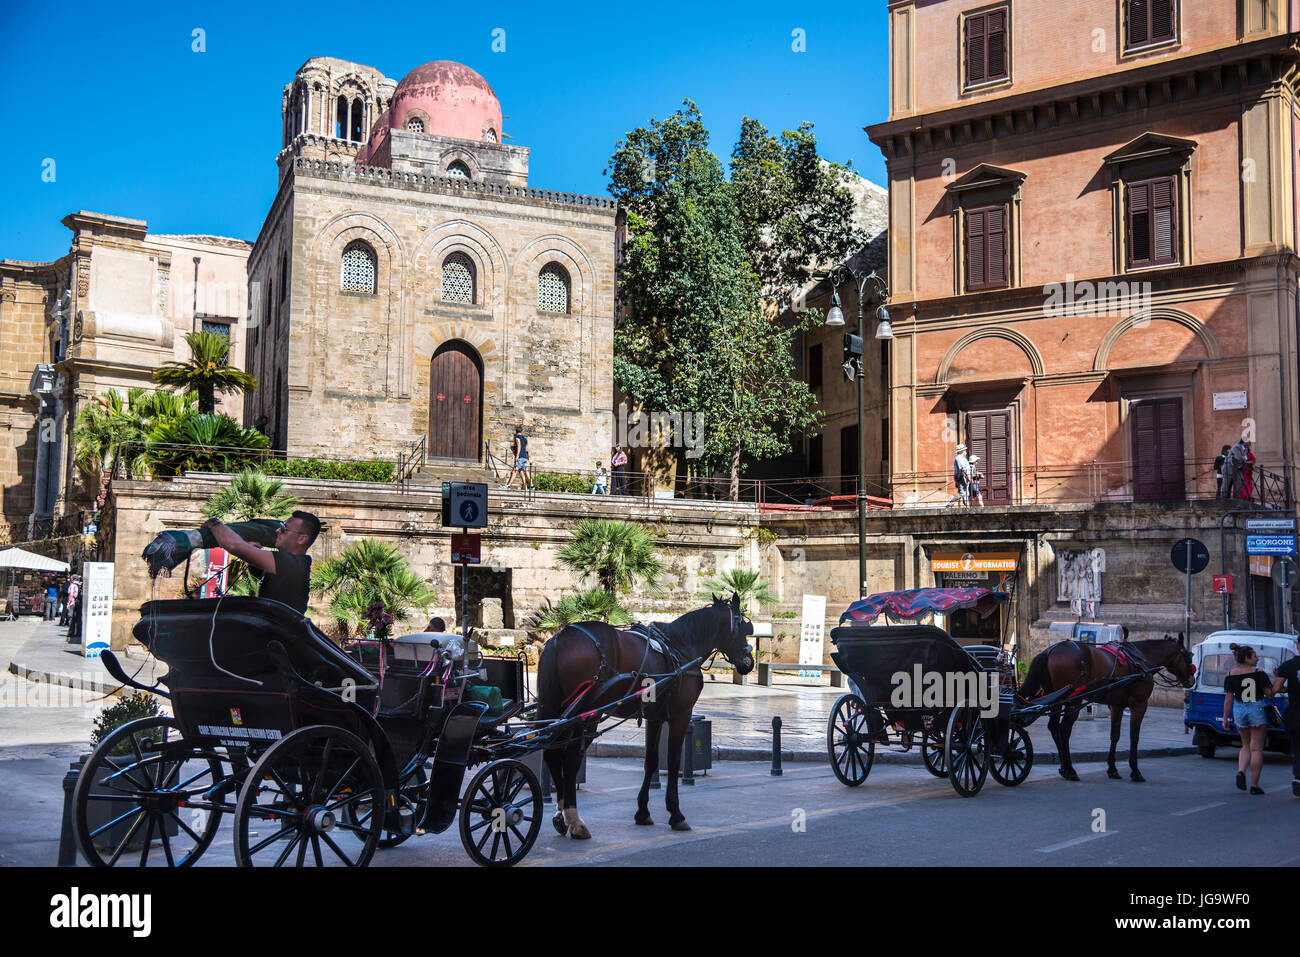 Horse and carriages waiting on the Via Maqueda  by Piazza Bellini and San Cataldo church. Palermo, Sicily, Italy. - Stock Image